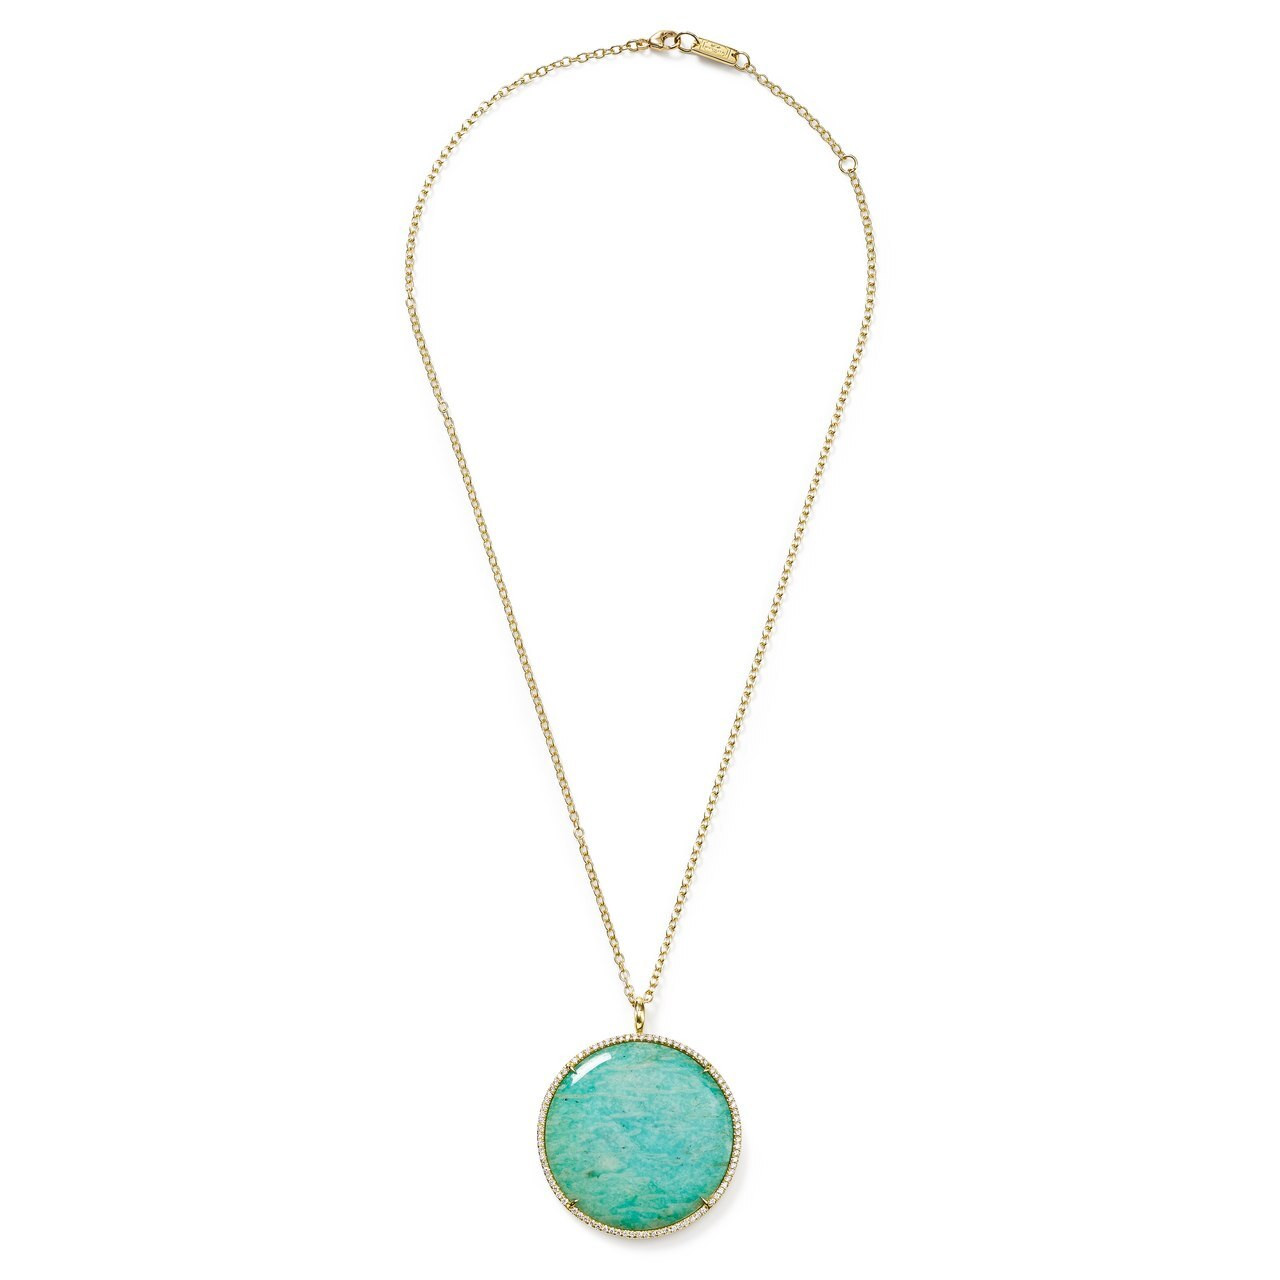 Ippolita Rock Candy Round Pendant Necklace In 18k Gold With Diamonds